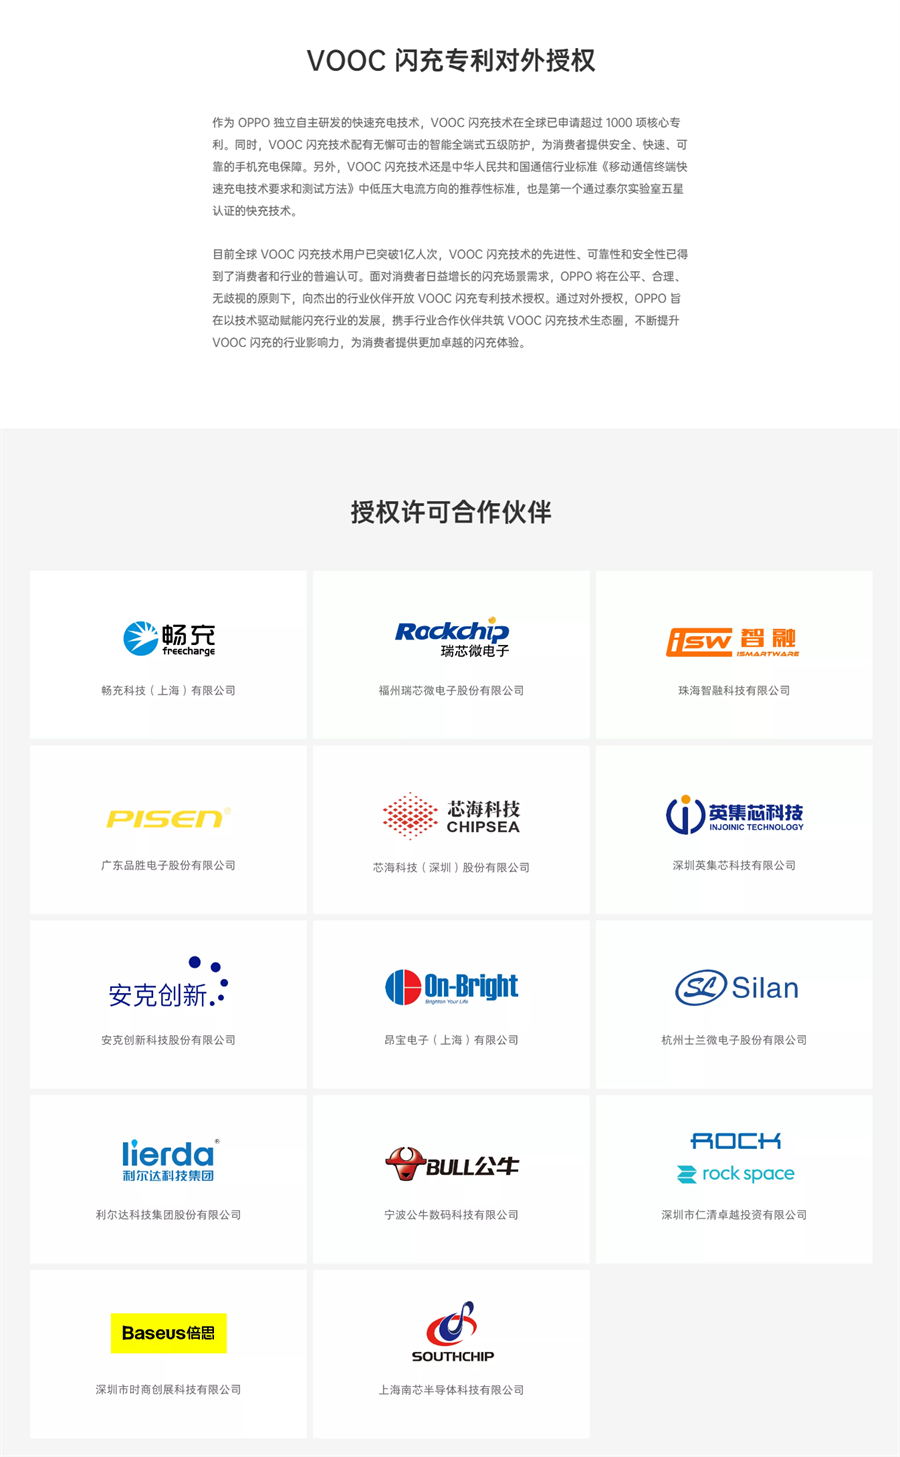 OPPO 知识产权1.png